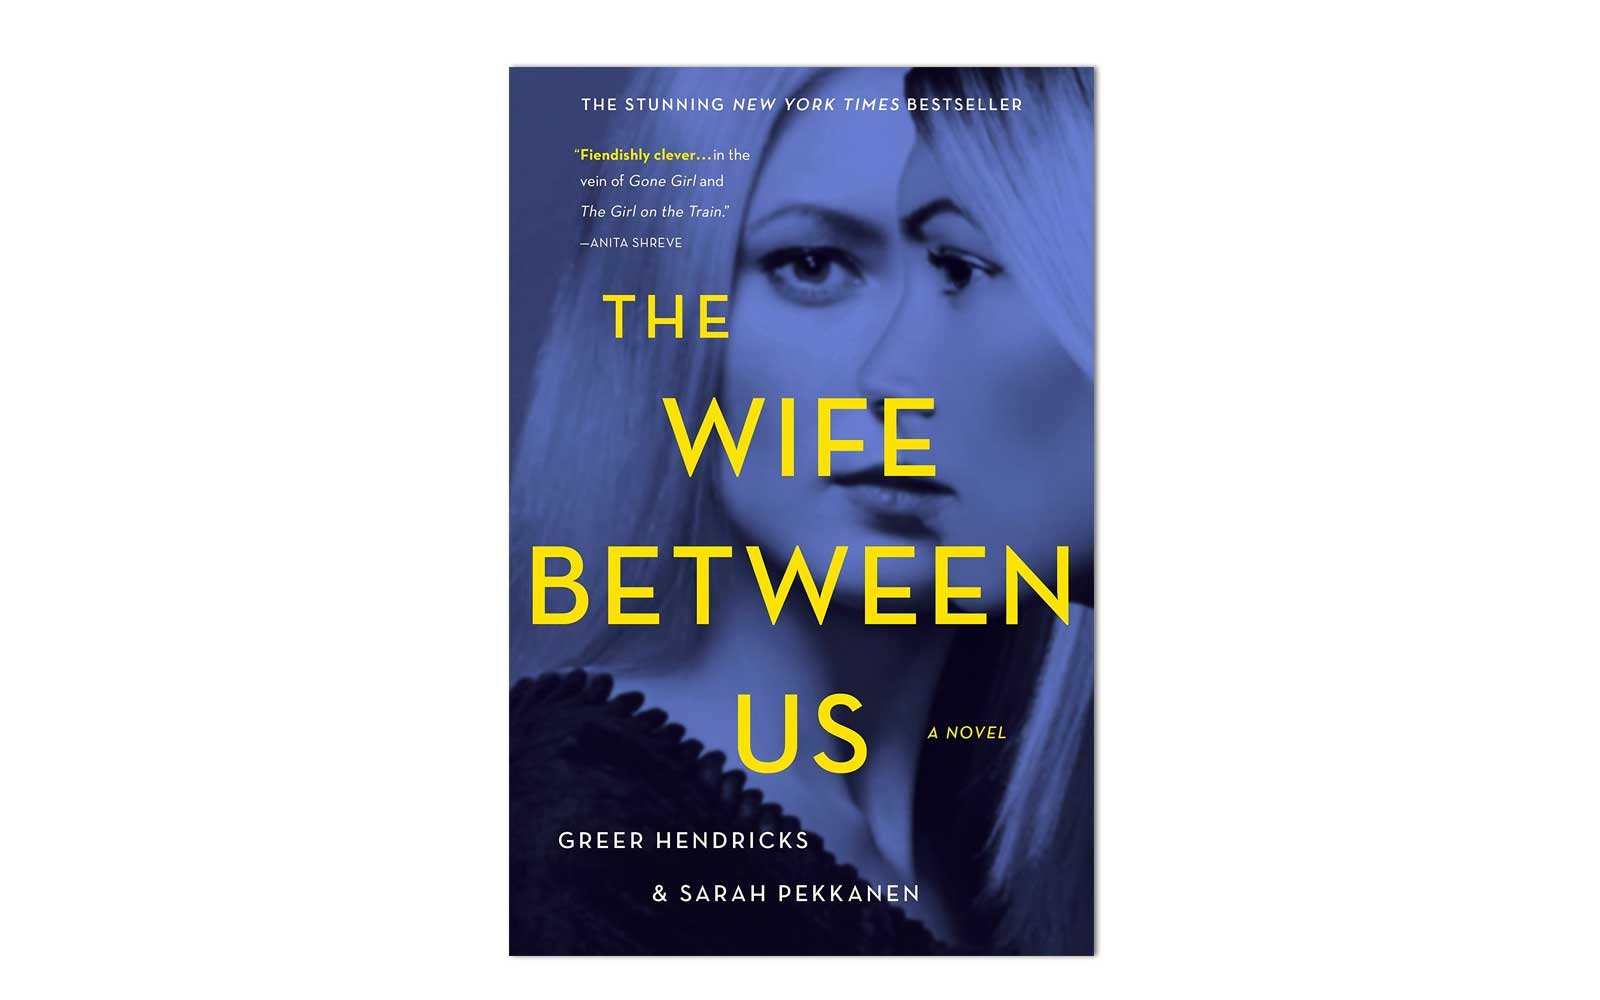 The Wife Between Us by Sarah Pekkanen and Greer Hendricks (St. Martin's Press)